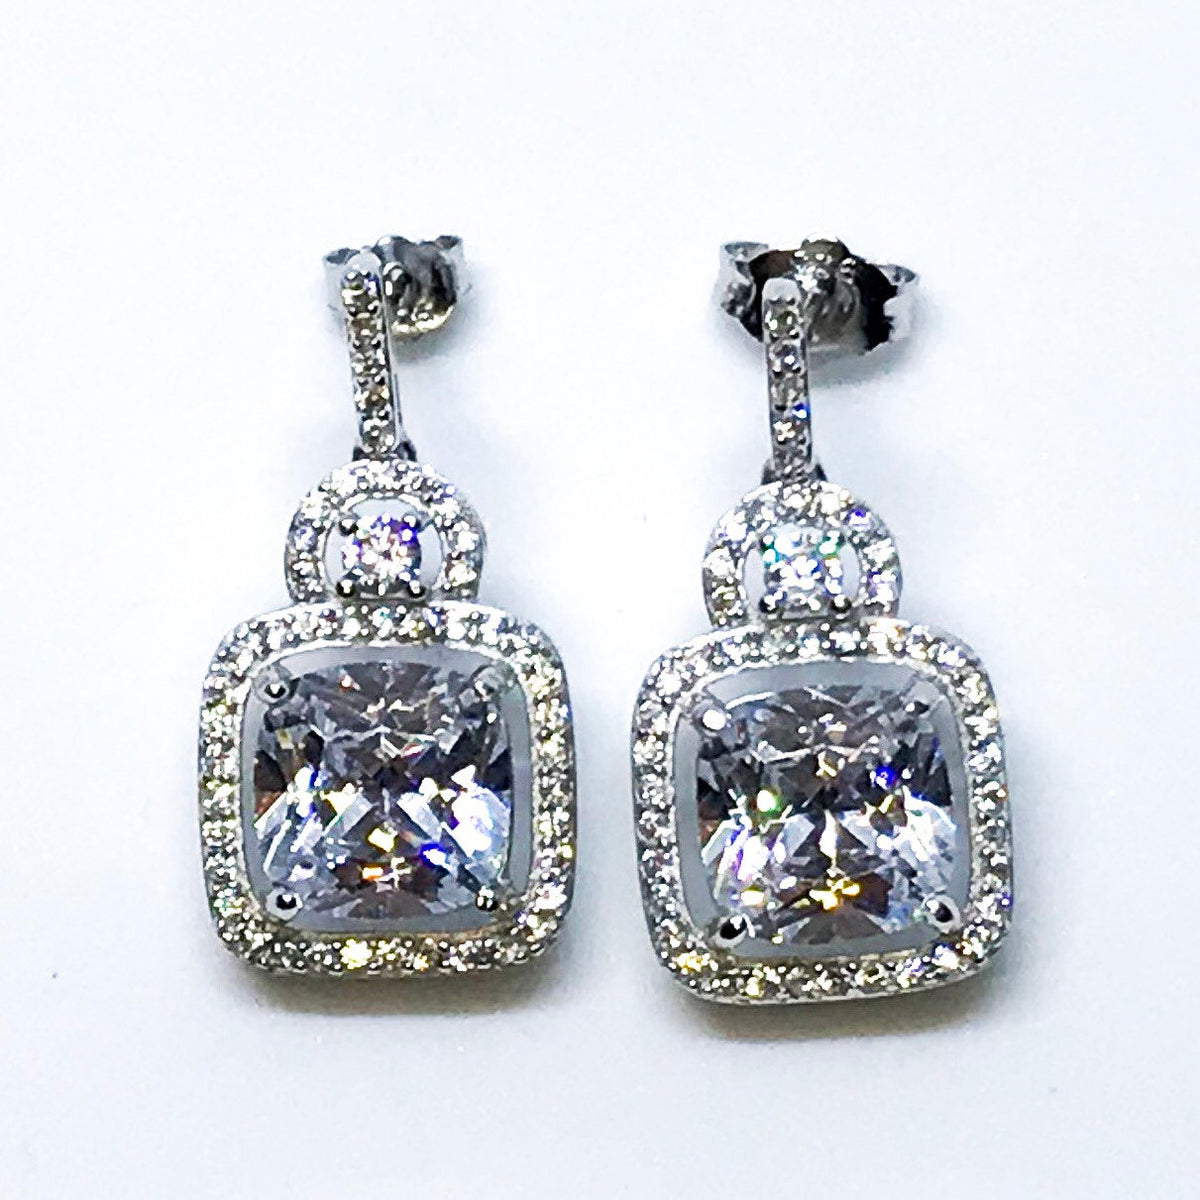 14K White Gold on Sterling Silver Dangling Sophisticated Earrings - 3 Royal Dazzy